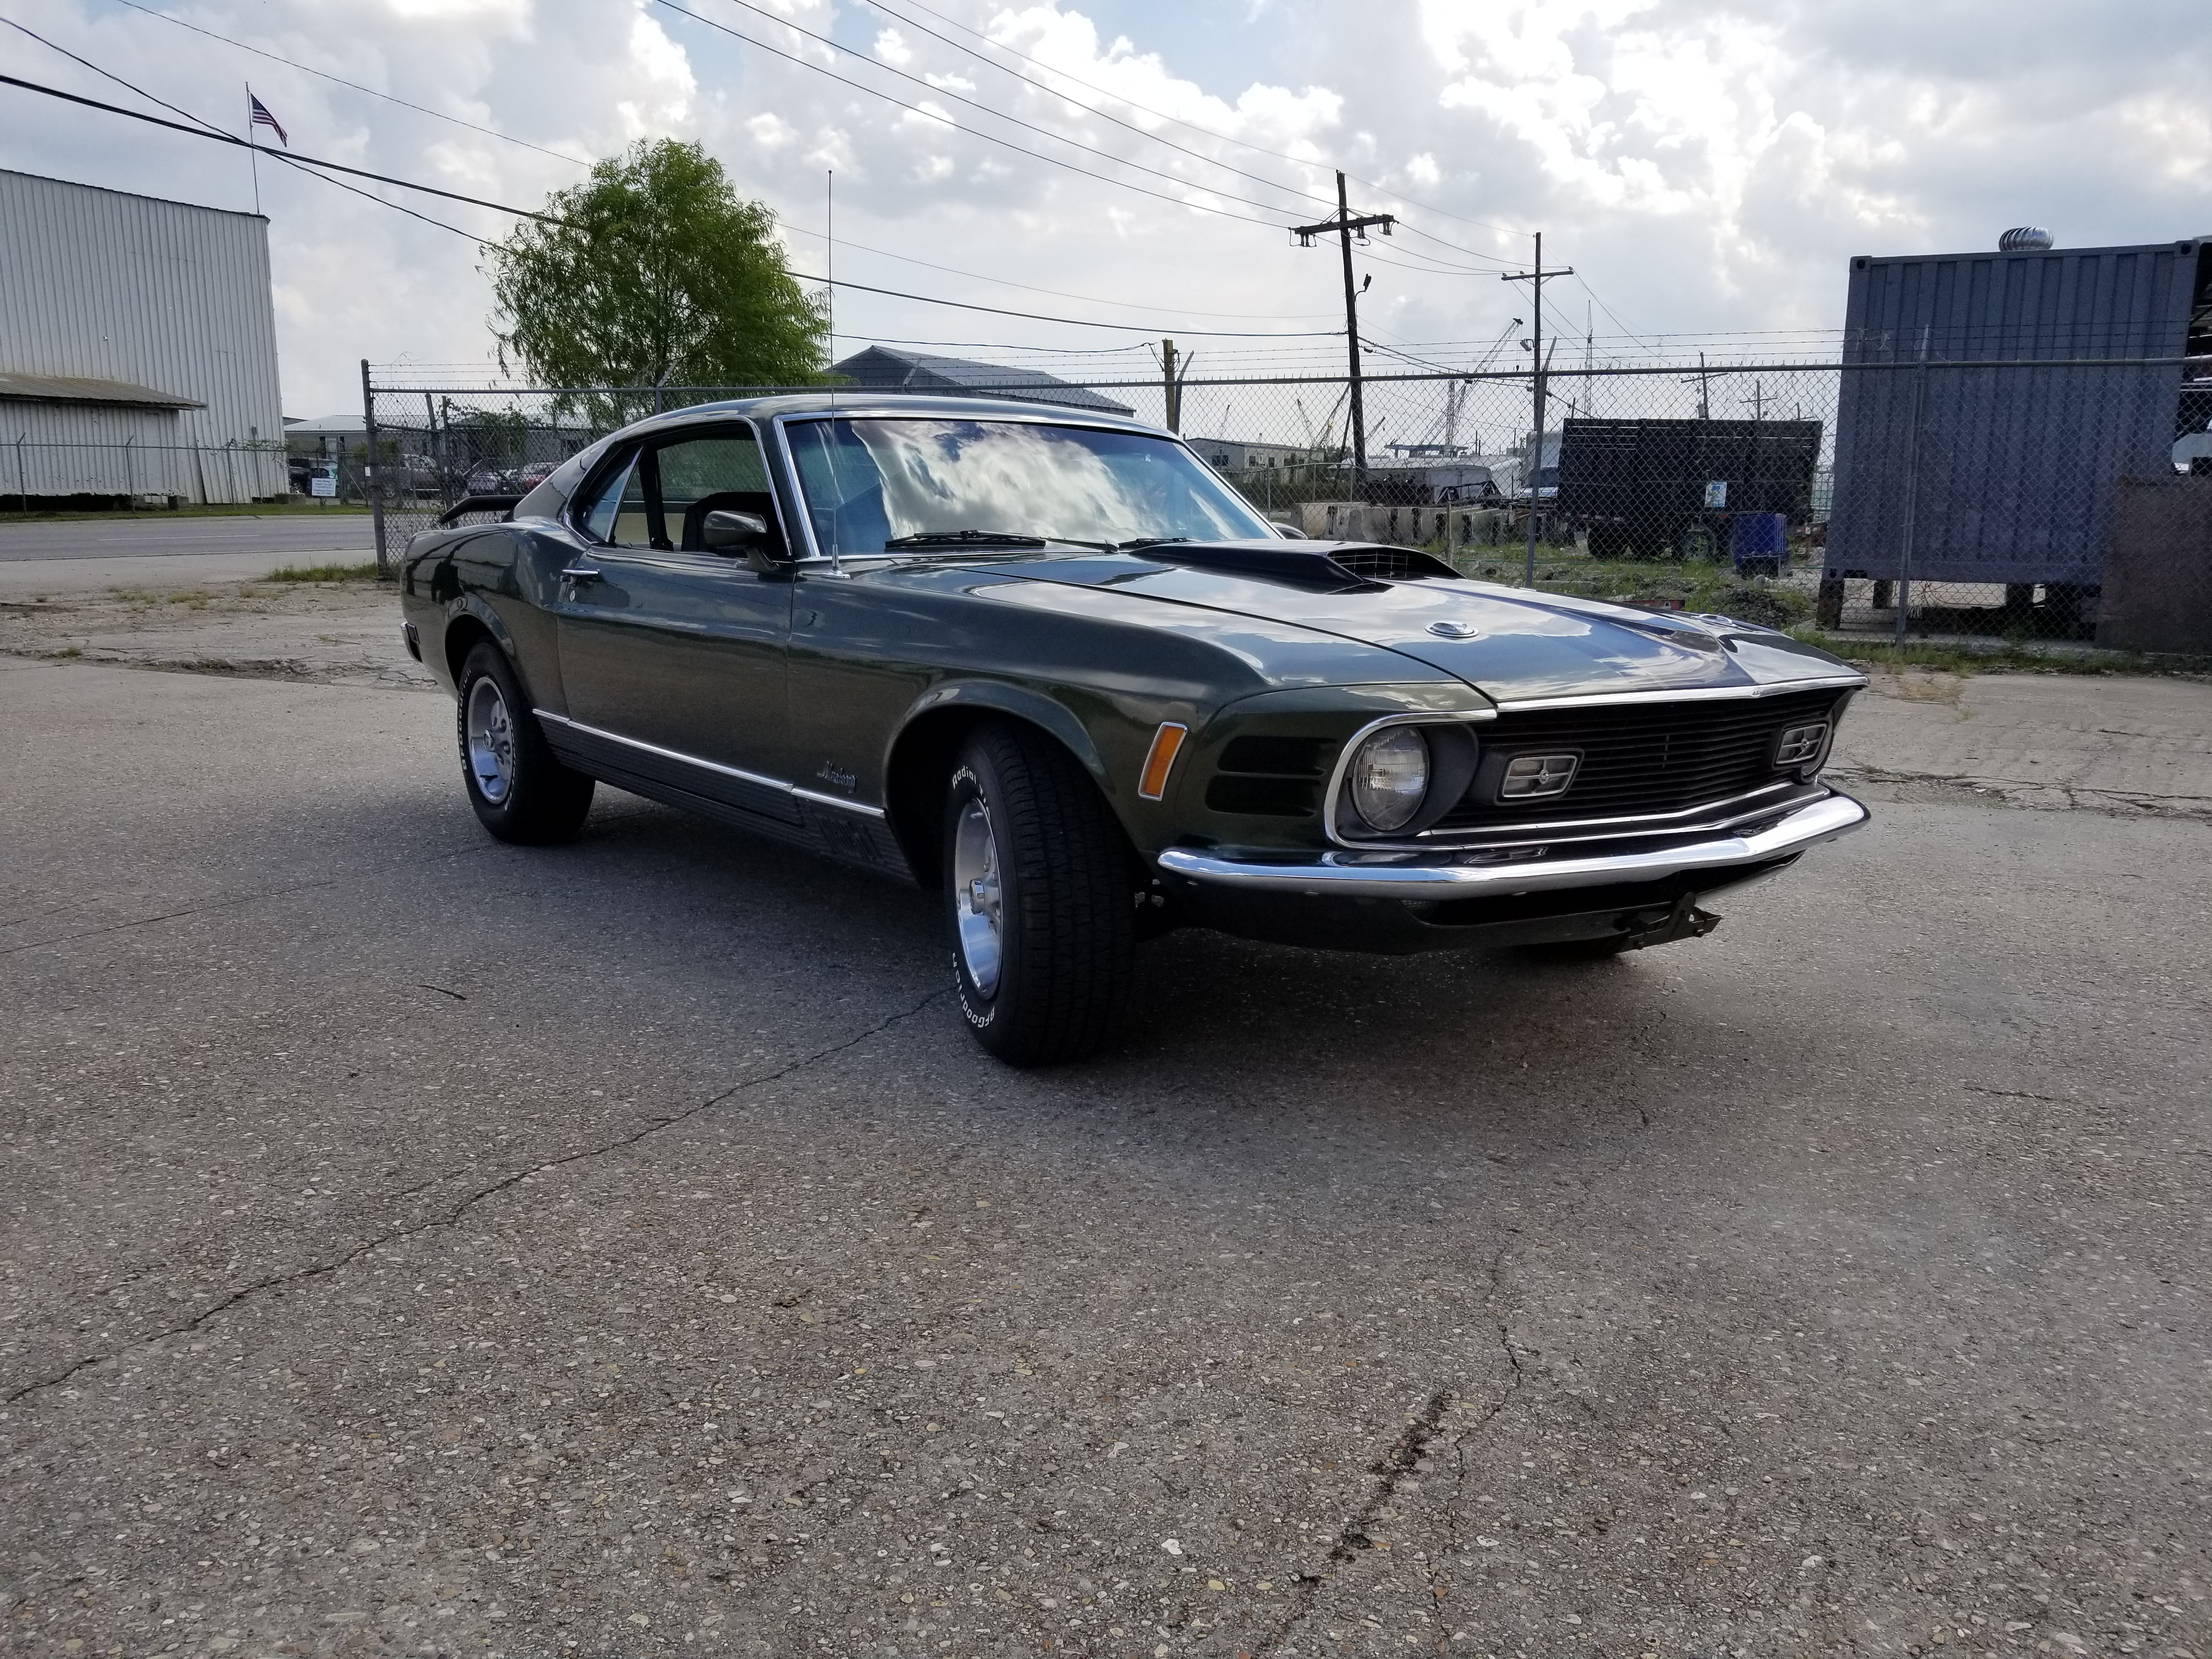 1970 Ford Mustang Mach 1 For Sale At Vicari Auctions Biloxi 2018 3rd Image Of A